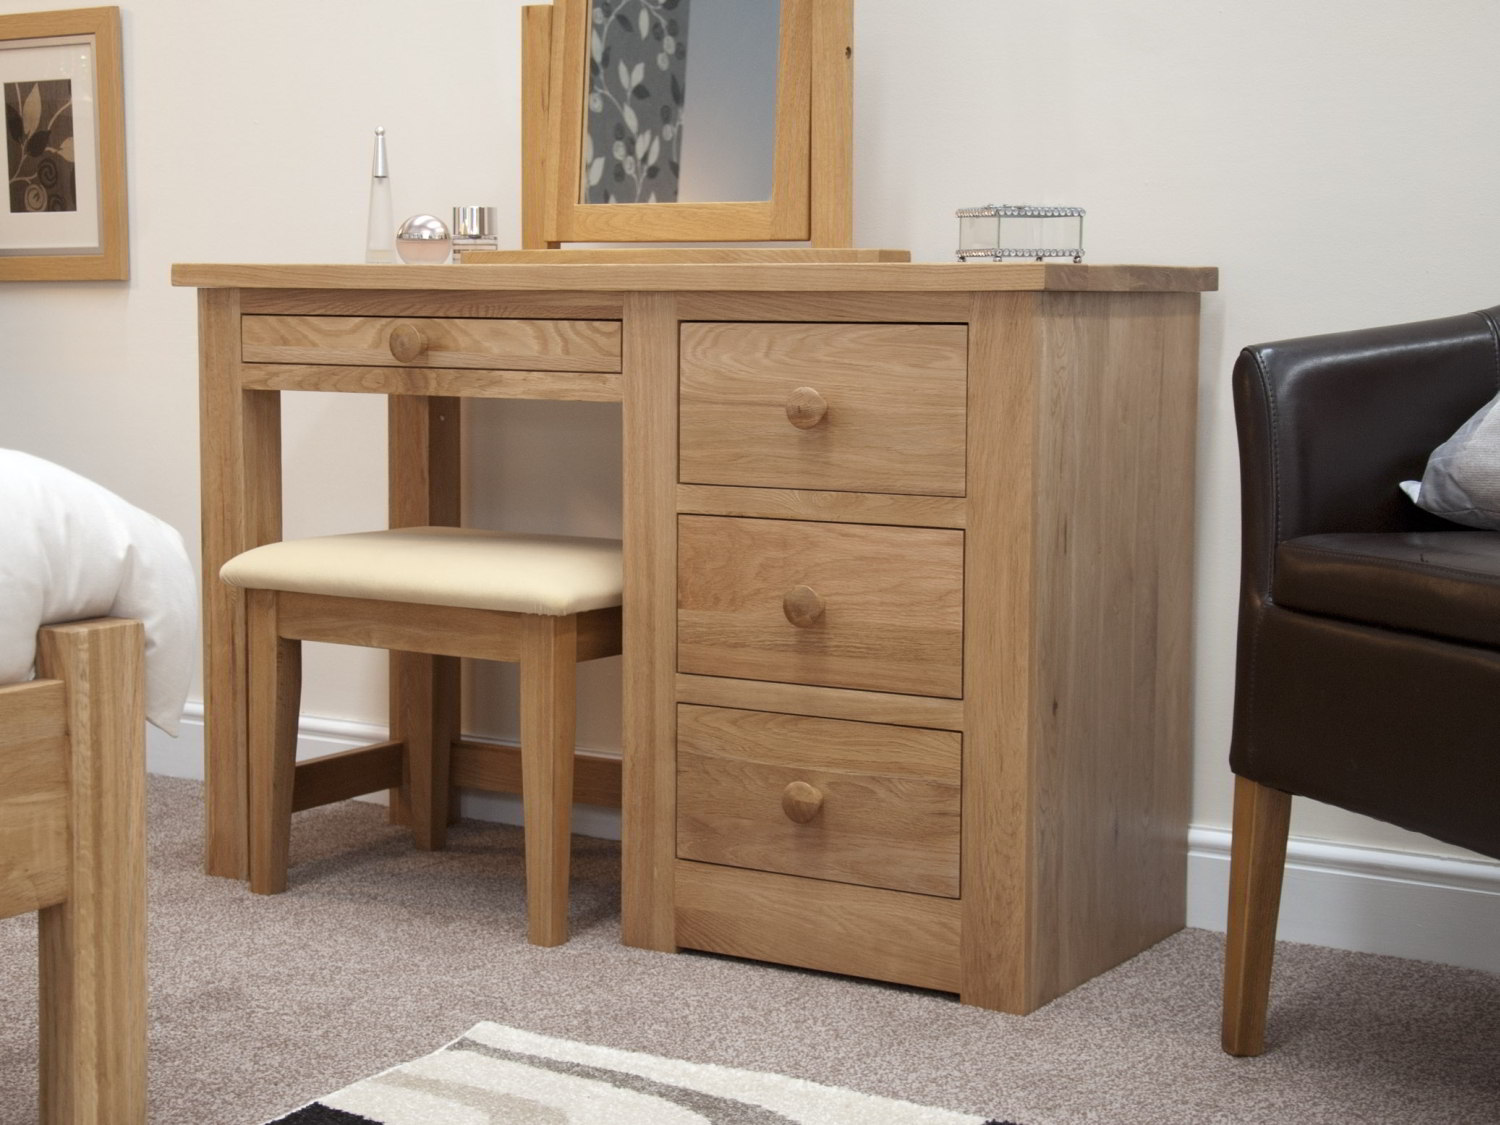 Bedroom furniture dressing table stools - Kingston Solid Modern Oak Bedroom Furniture Dressing Table With Stool